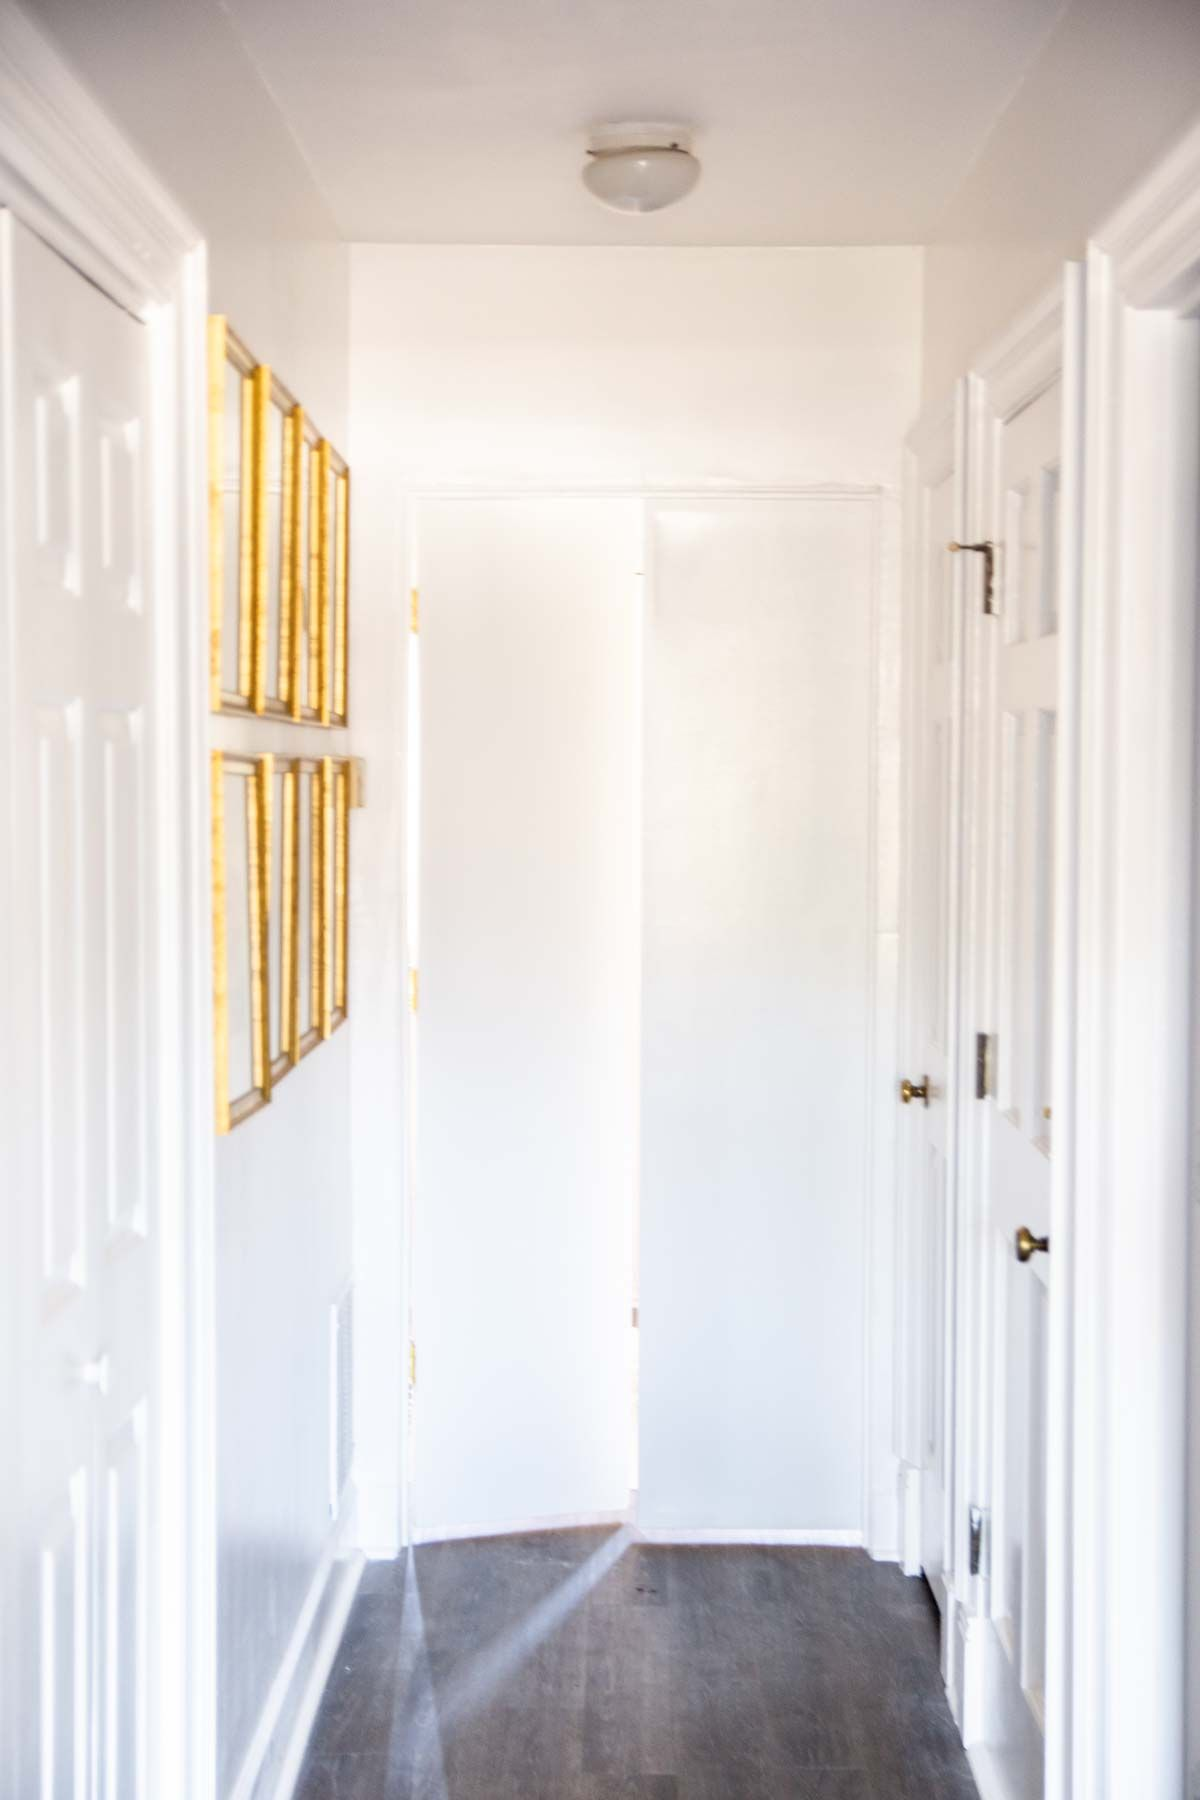 Why I Chose High Gloss Wall Paint In Dove Hill Project Wall Painting High Gloss White Wall